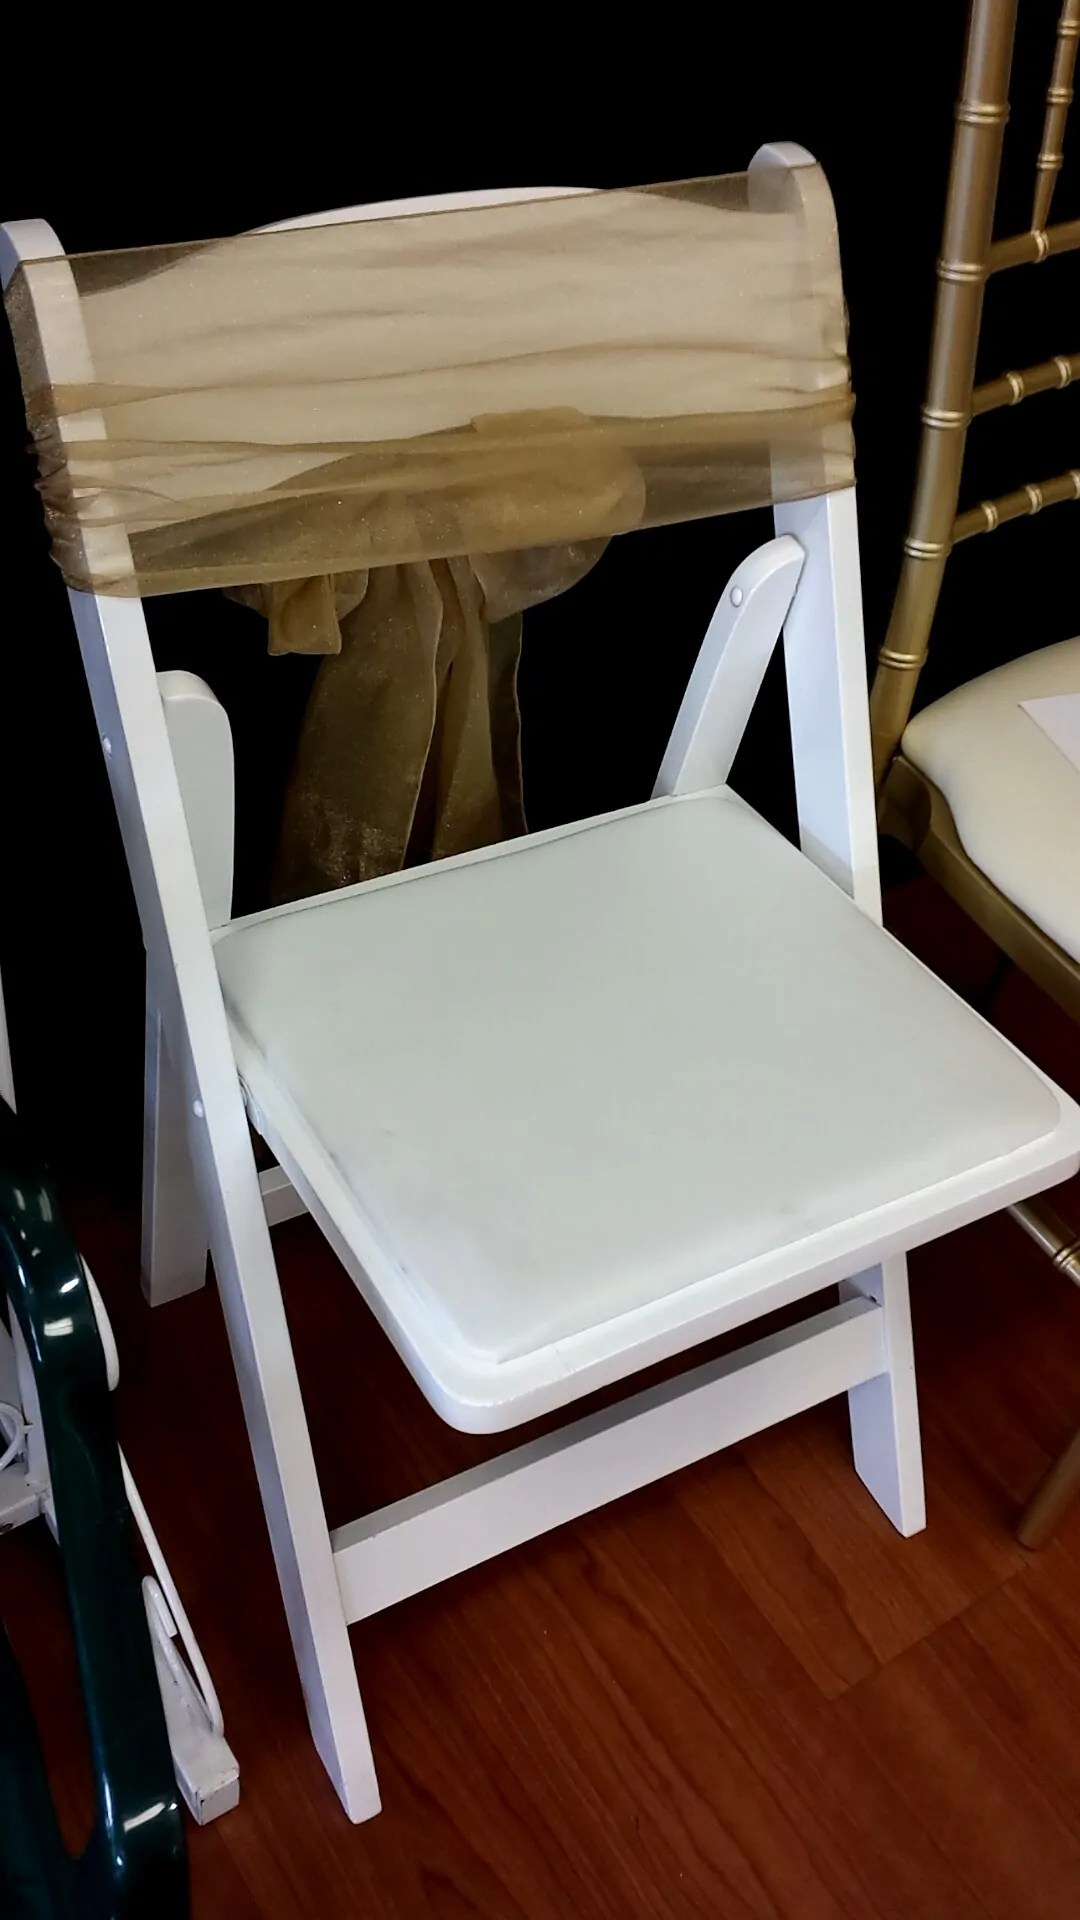 chairs for affairs chair covers and more norfolk bright white seat frame folding